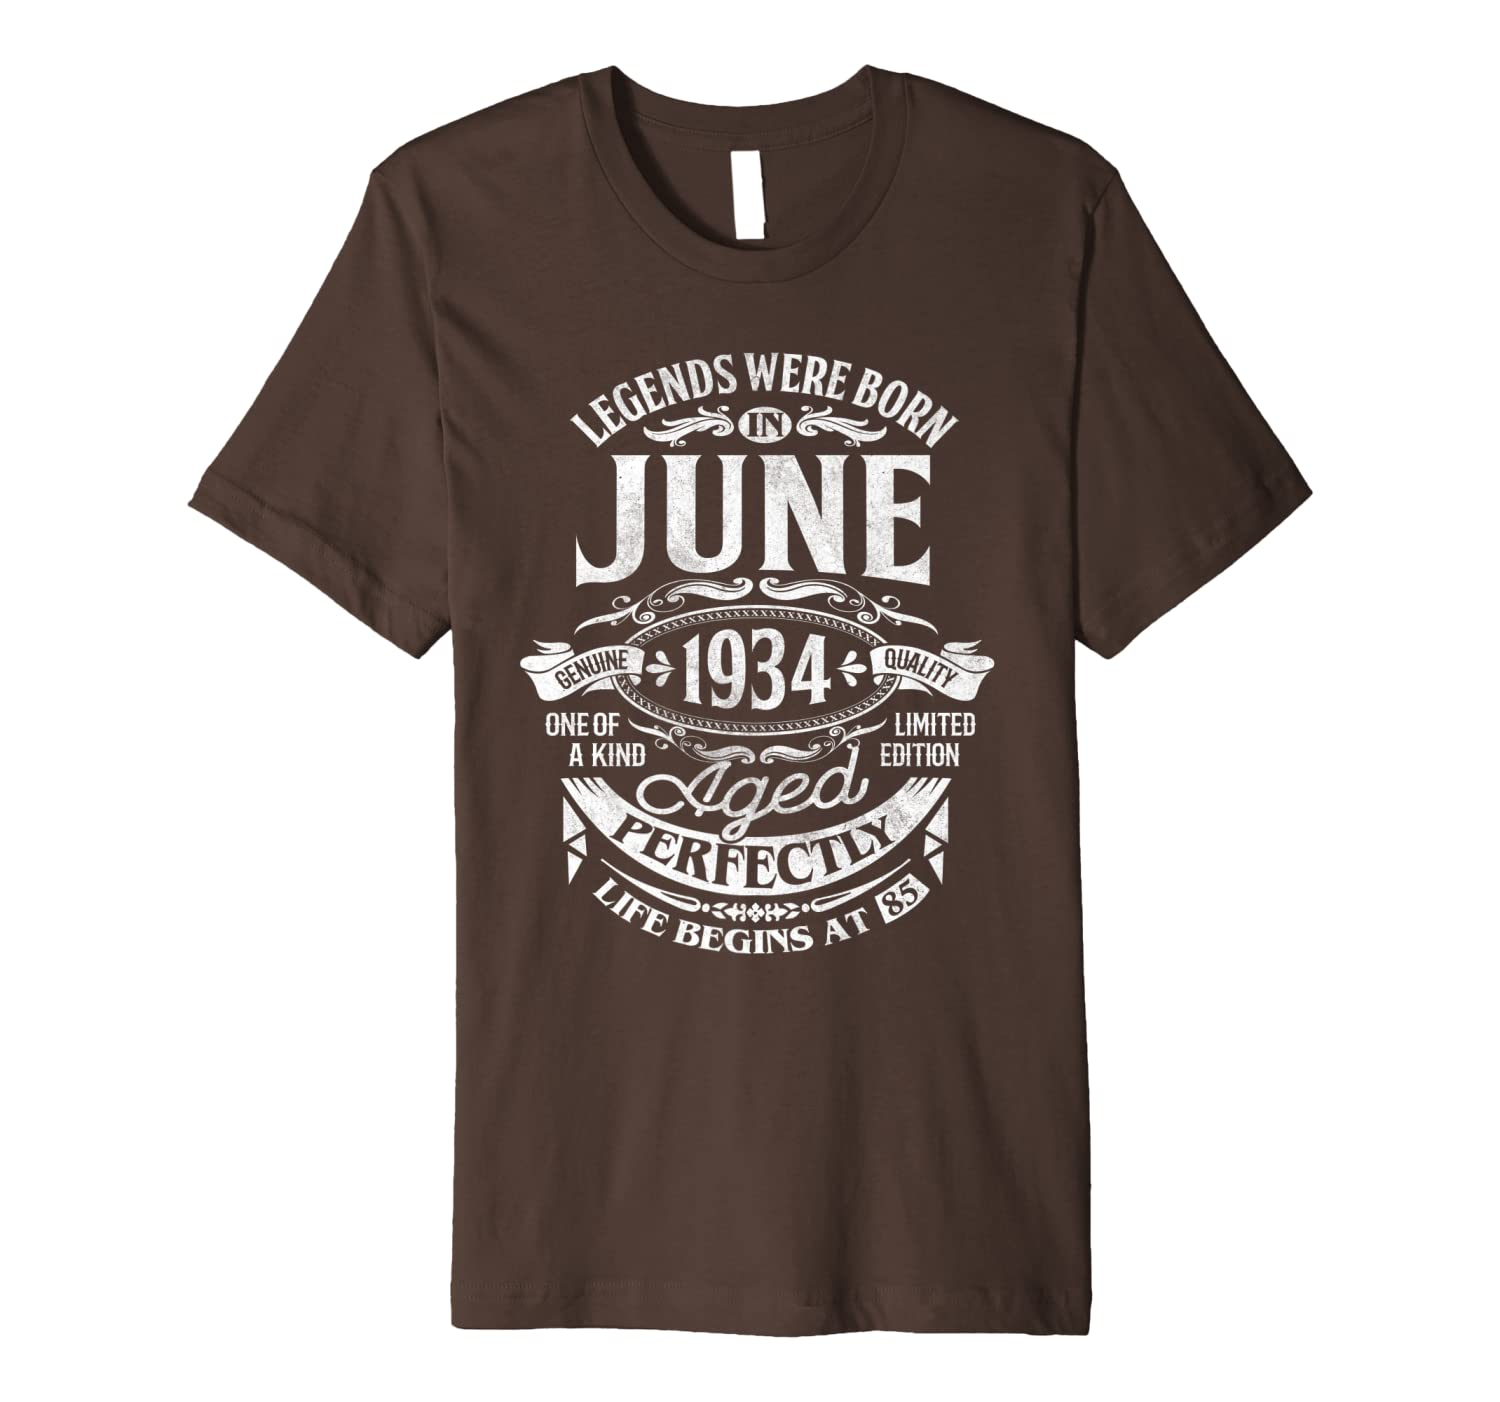 Legends Were Born In June 1934 85th Birthday Gift Shirt Premium T-Shirt Unisex Tshirt